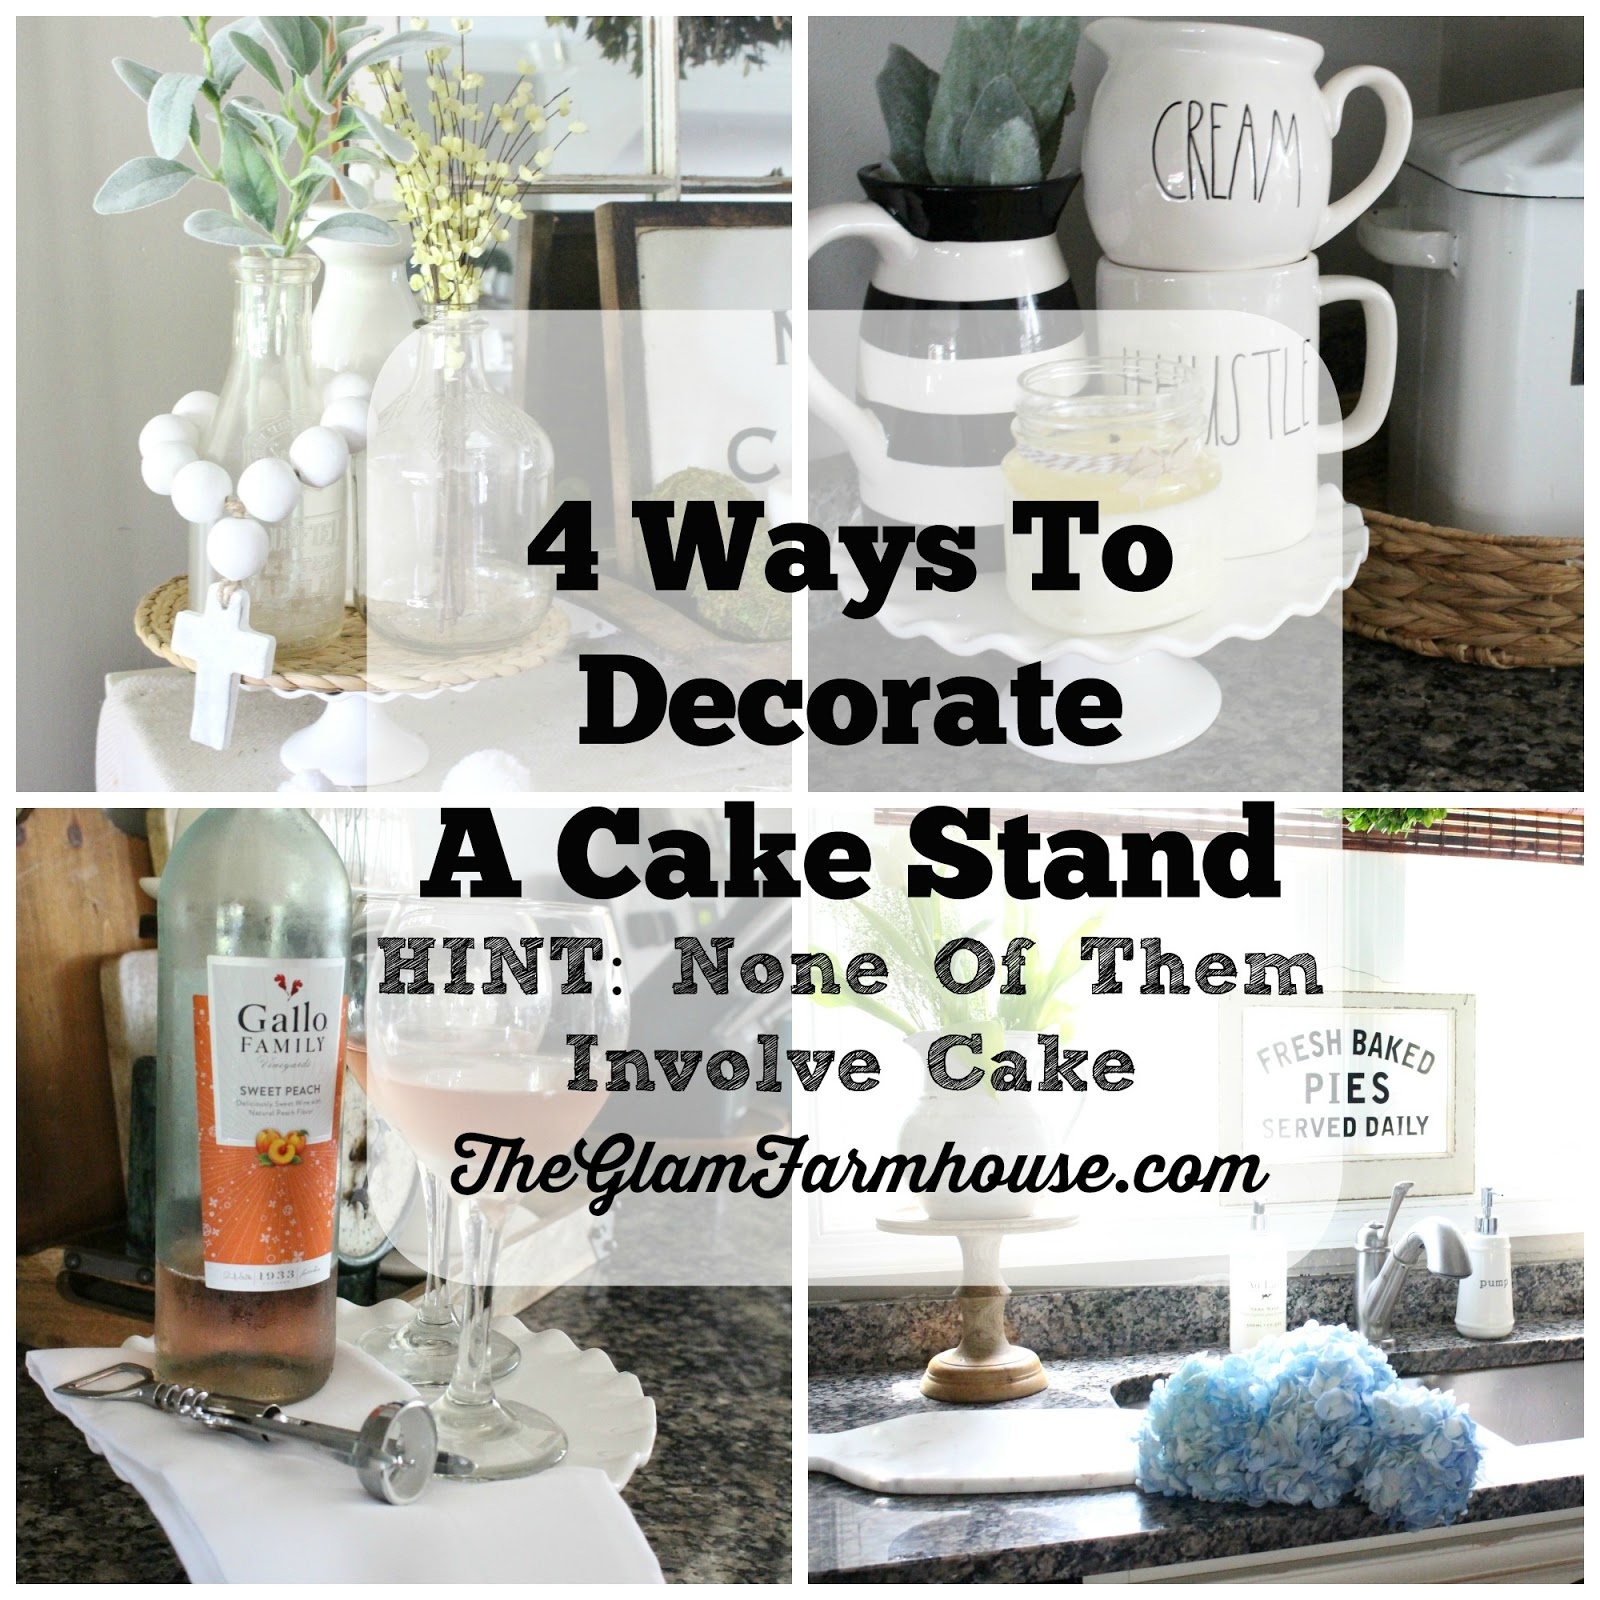 4 Ways To Decorate A Cake Stand  The Glam Farmhouse